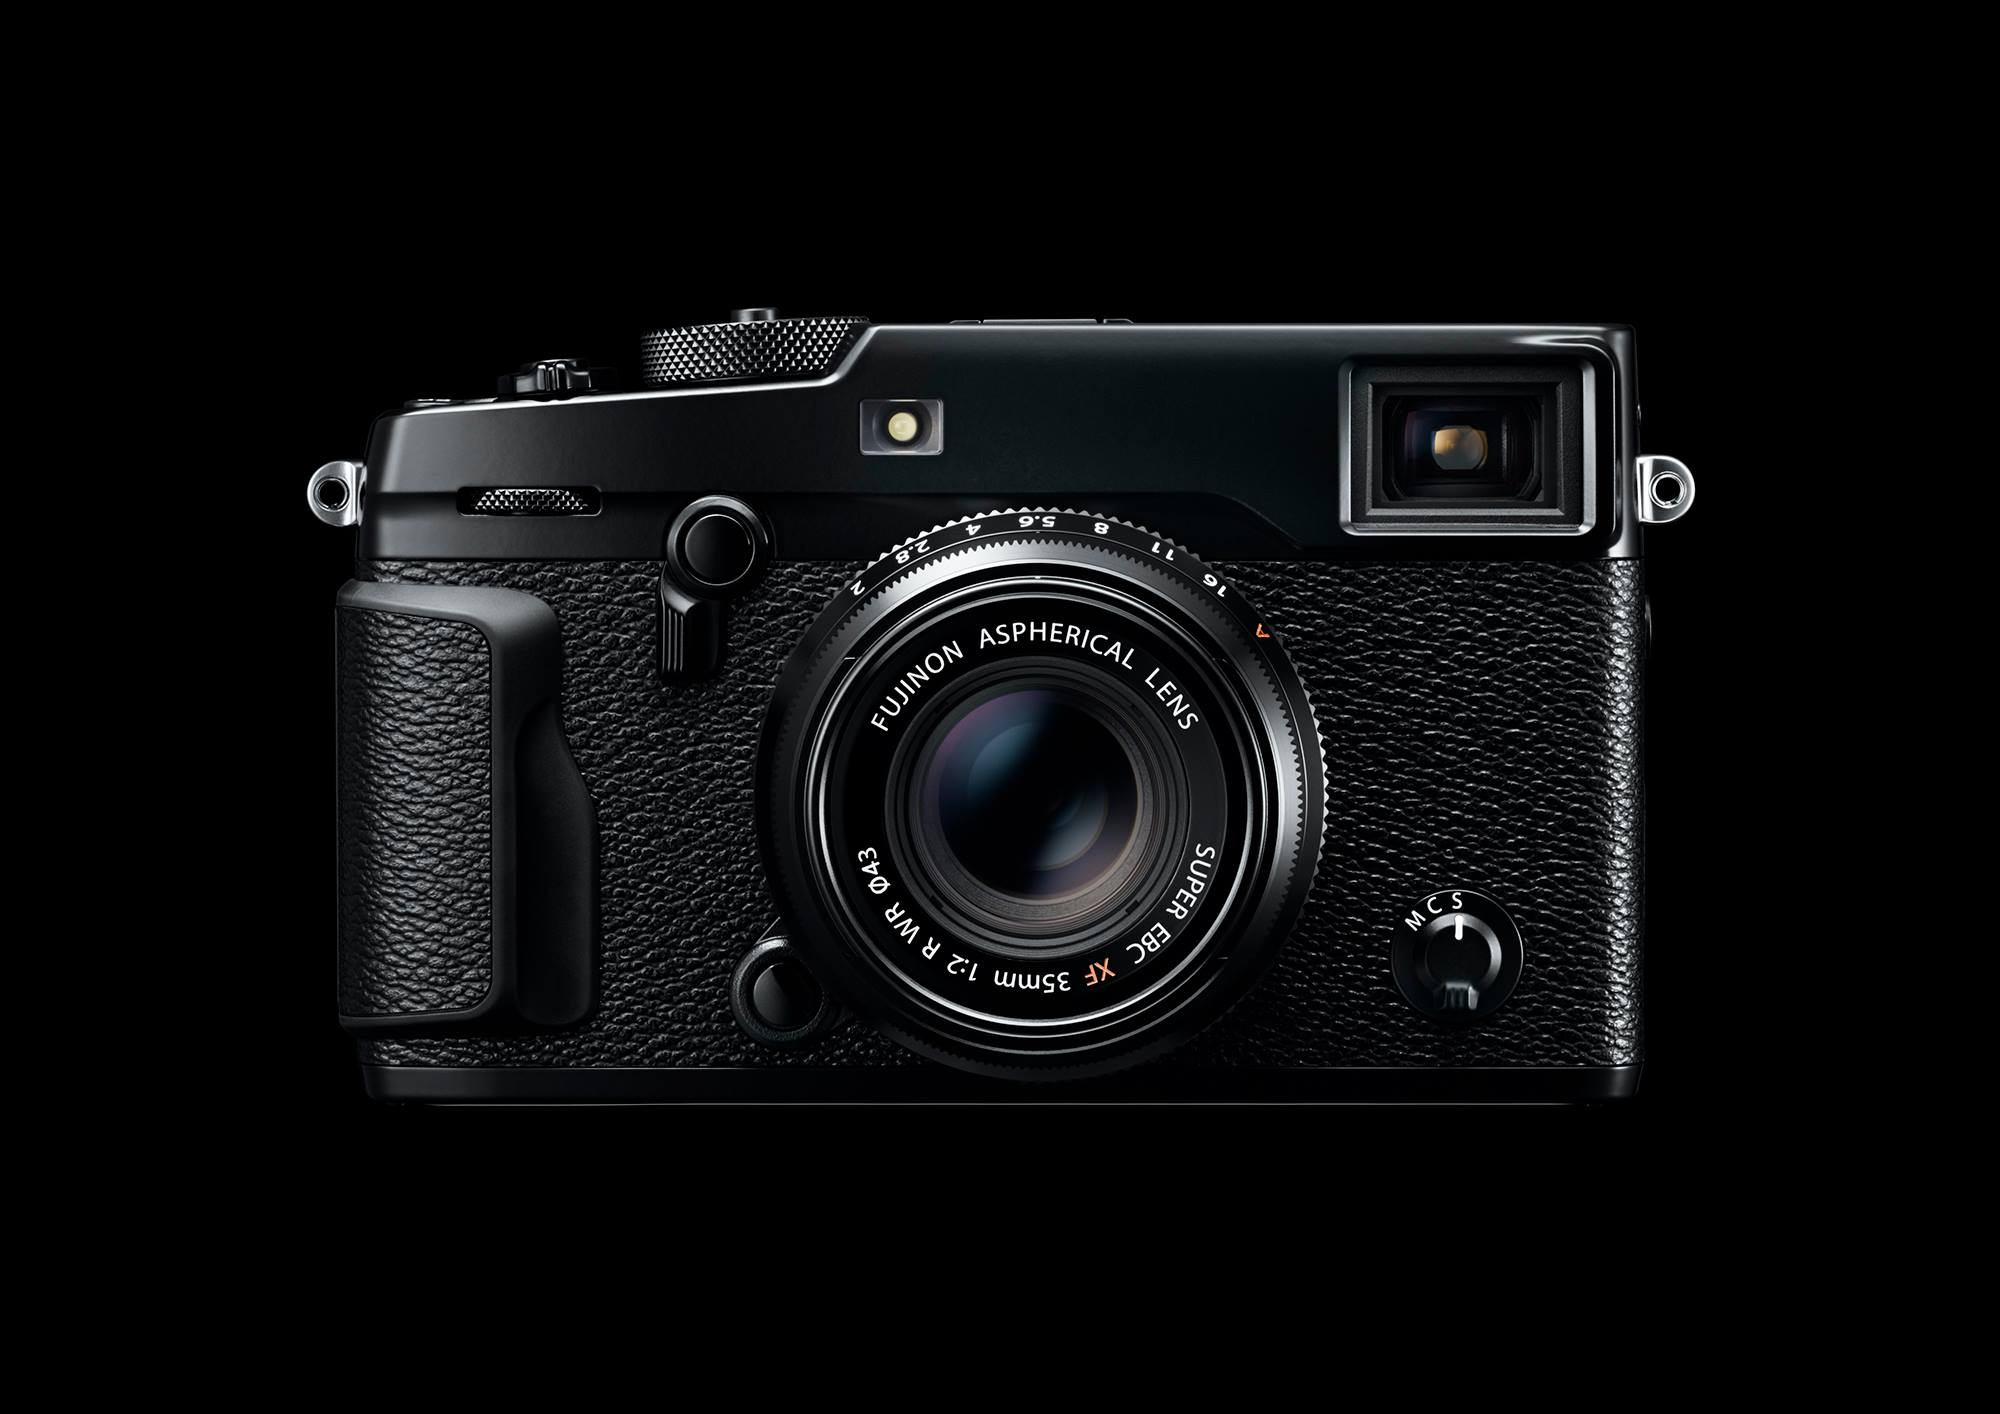 fuji x pro2 firmware update 2 0 officially released photo rumors. Black Bedroom Furniture Sets. Home Design Ideas